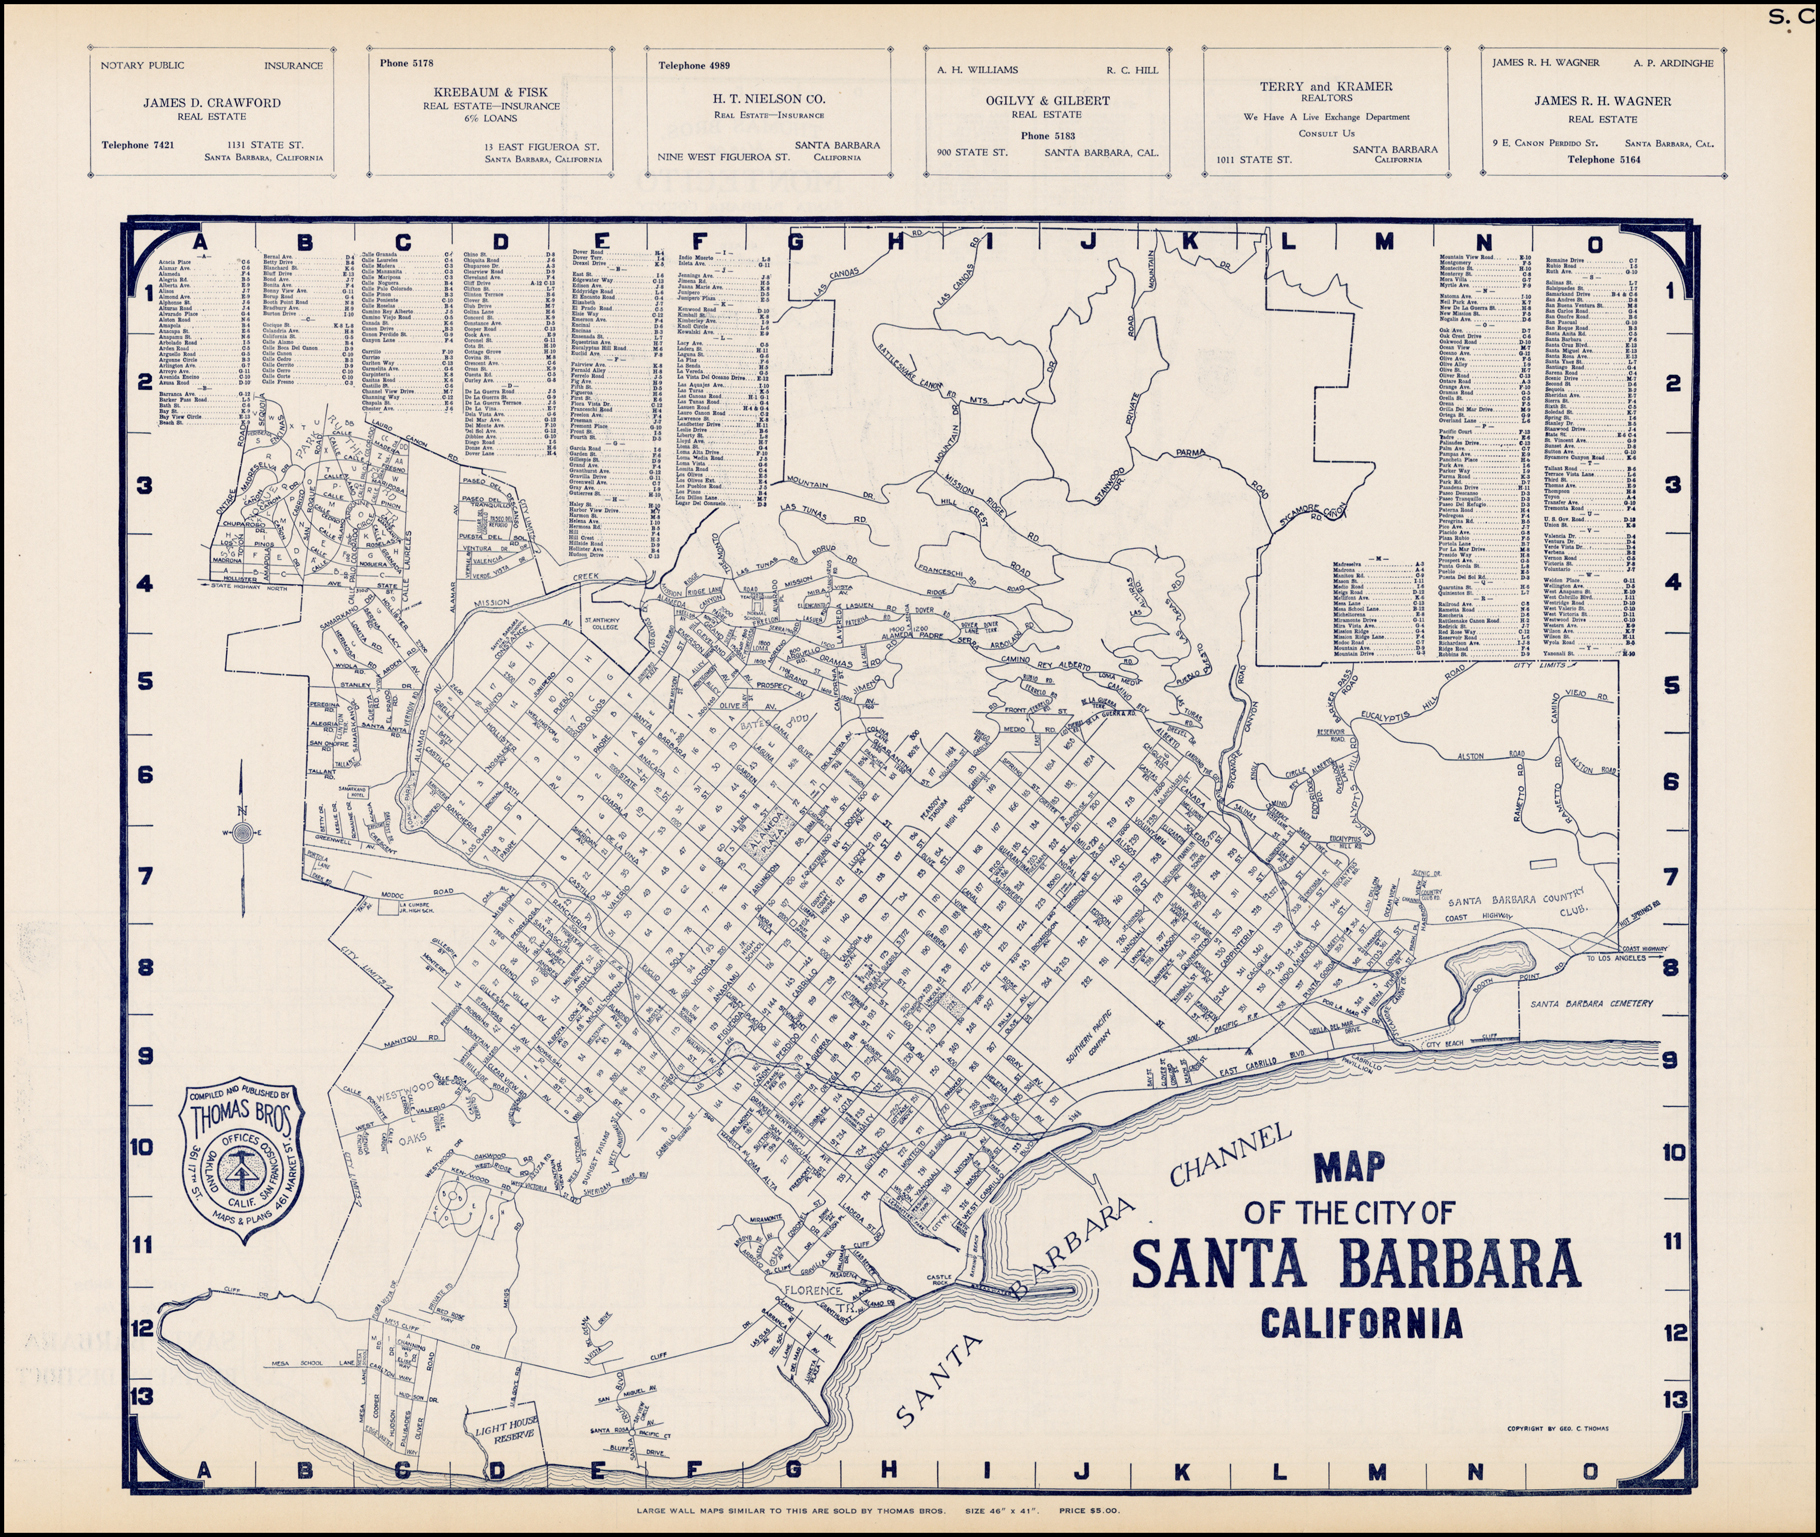 Thomas Bros. Map Of The City Of Santa Barbara California - Barry - Thomas Bros Maps California